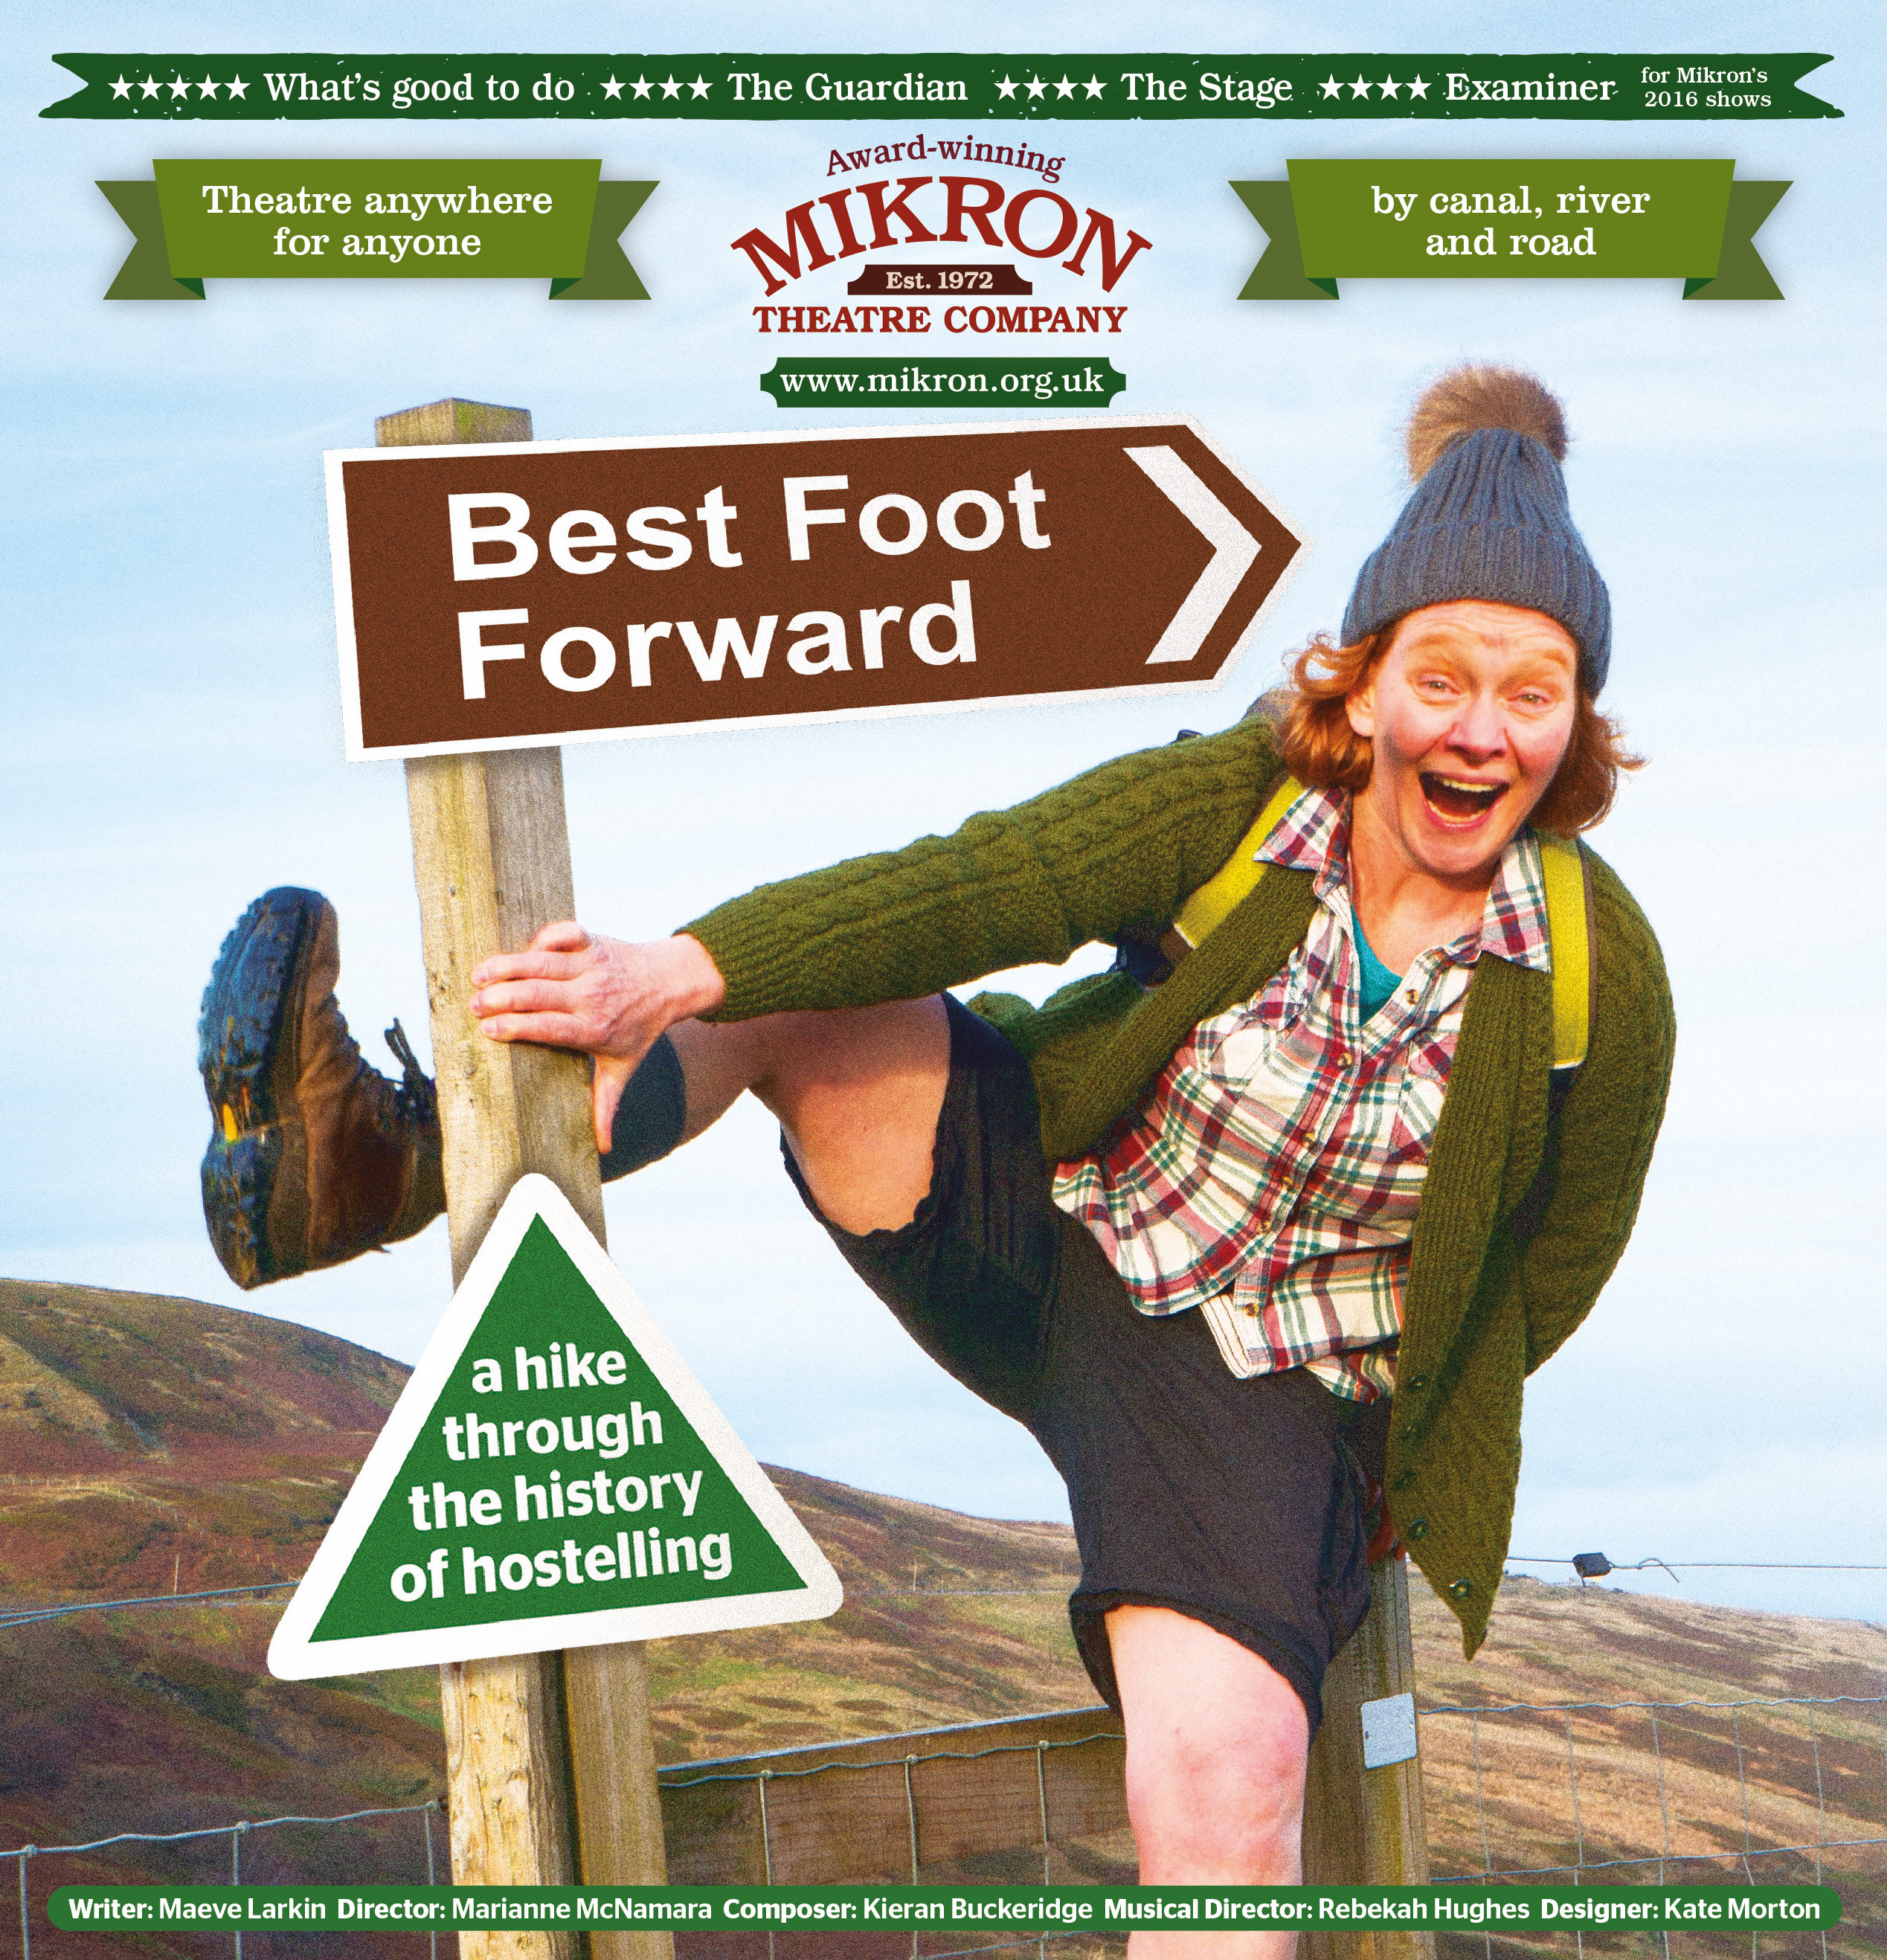 Best Foot Forward Poster image